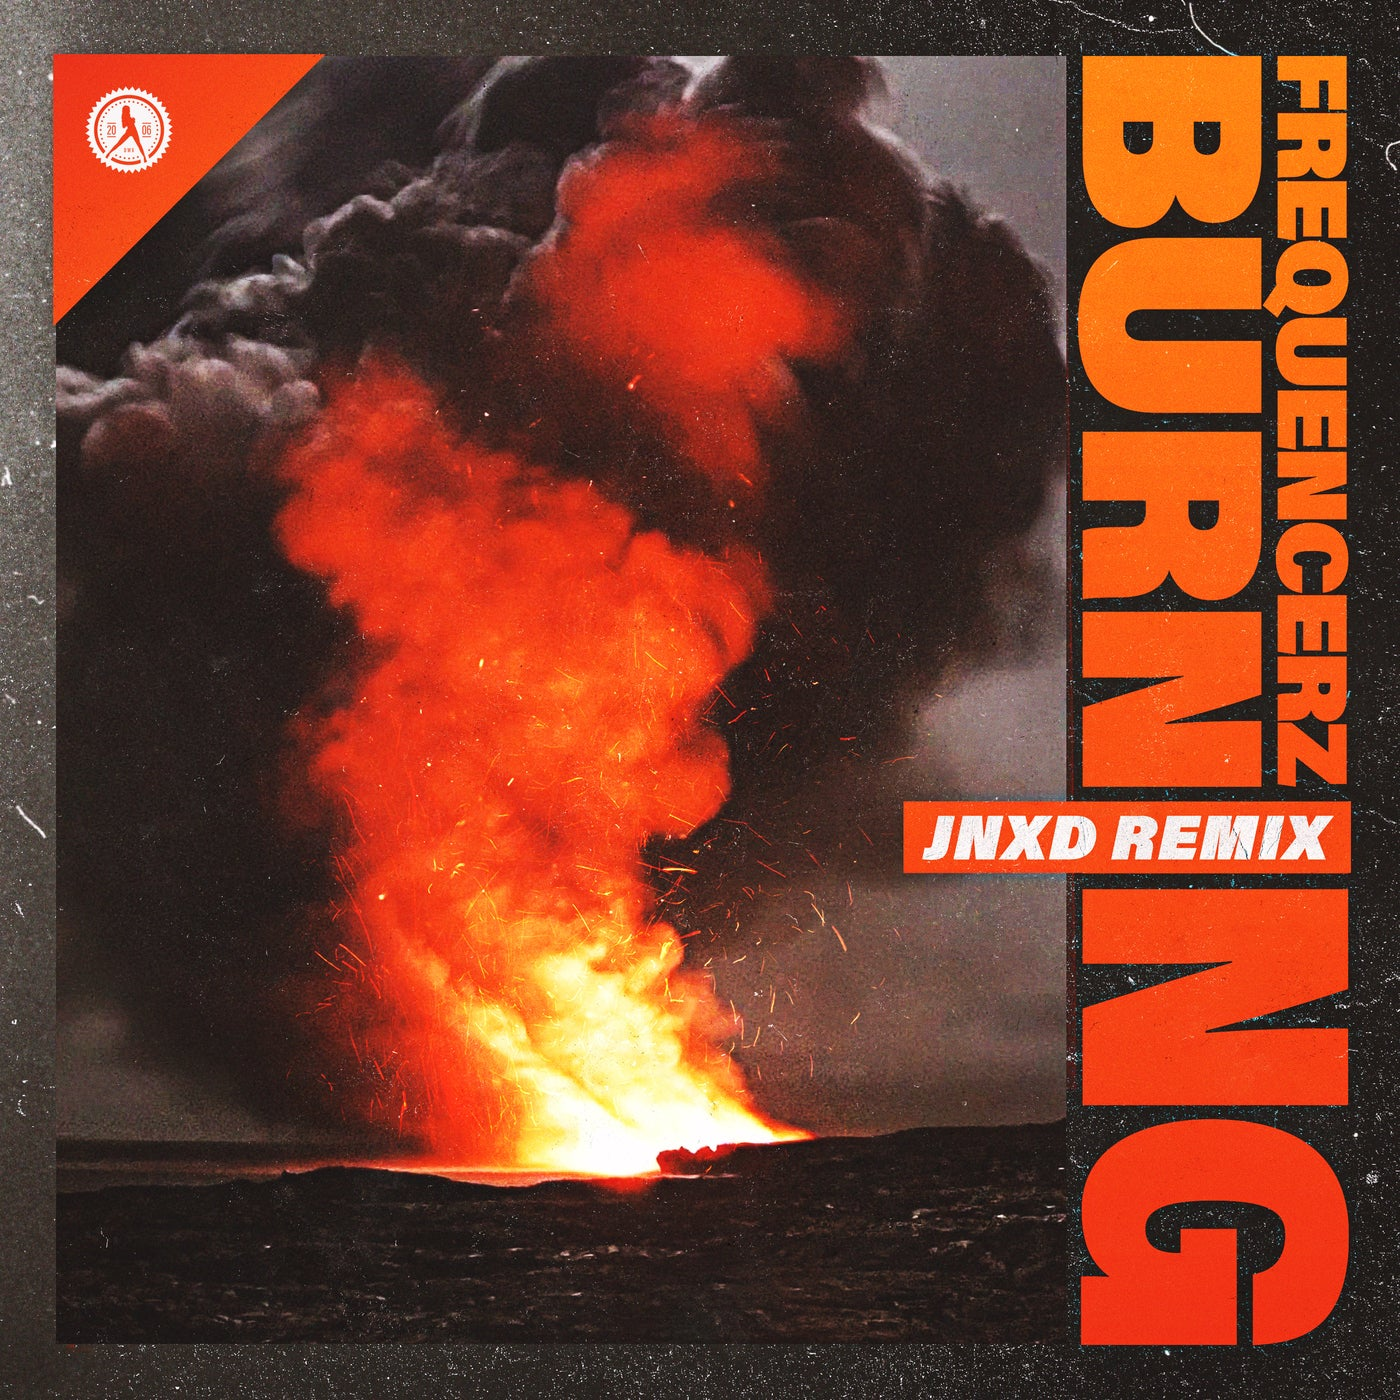 Burning (JNXD Remix) (Extended Mix)